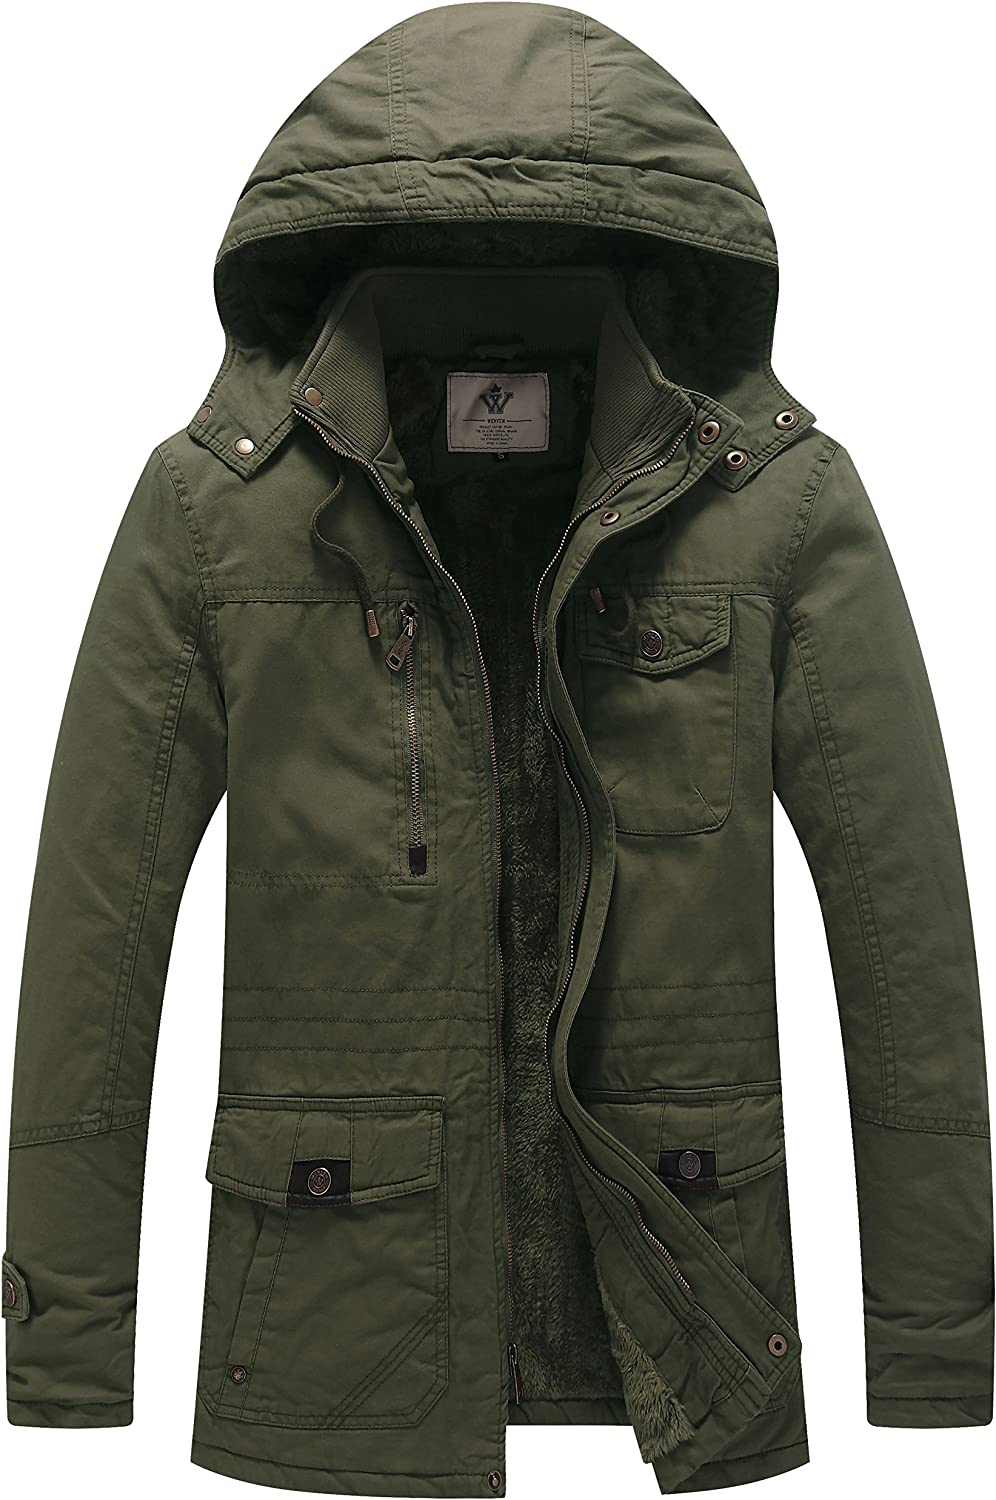 cc353372dc4 with Parka Cotton Thicken Winter Men's WenVen Removable Jacket Hood ...